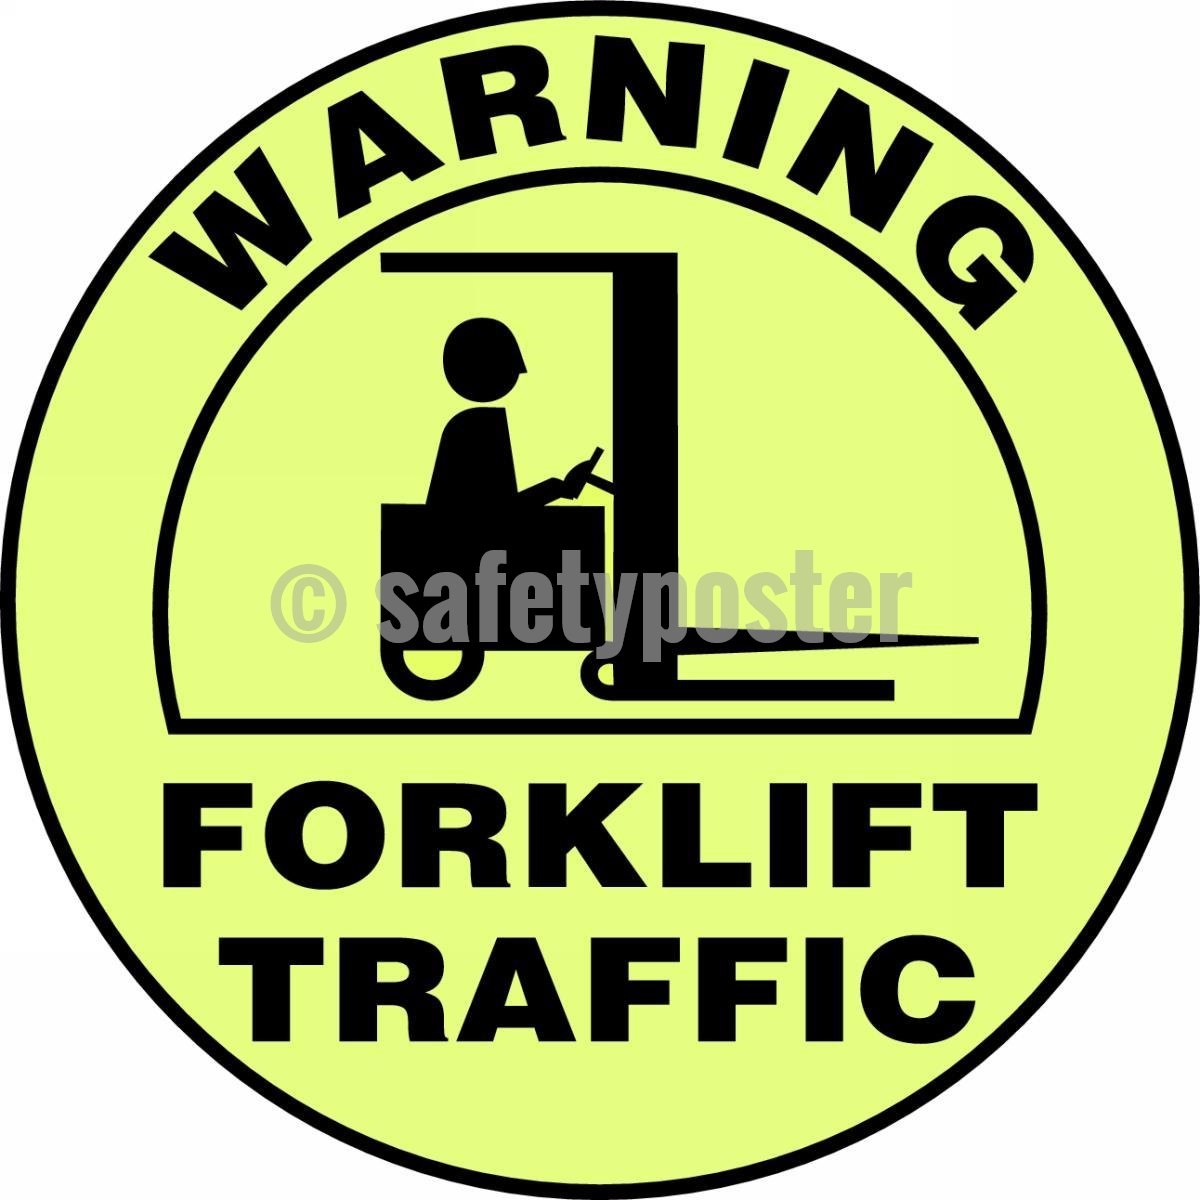 Warning Forklift Traffic - Glow Floor Sign Adhesive Signs